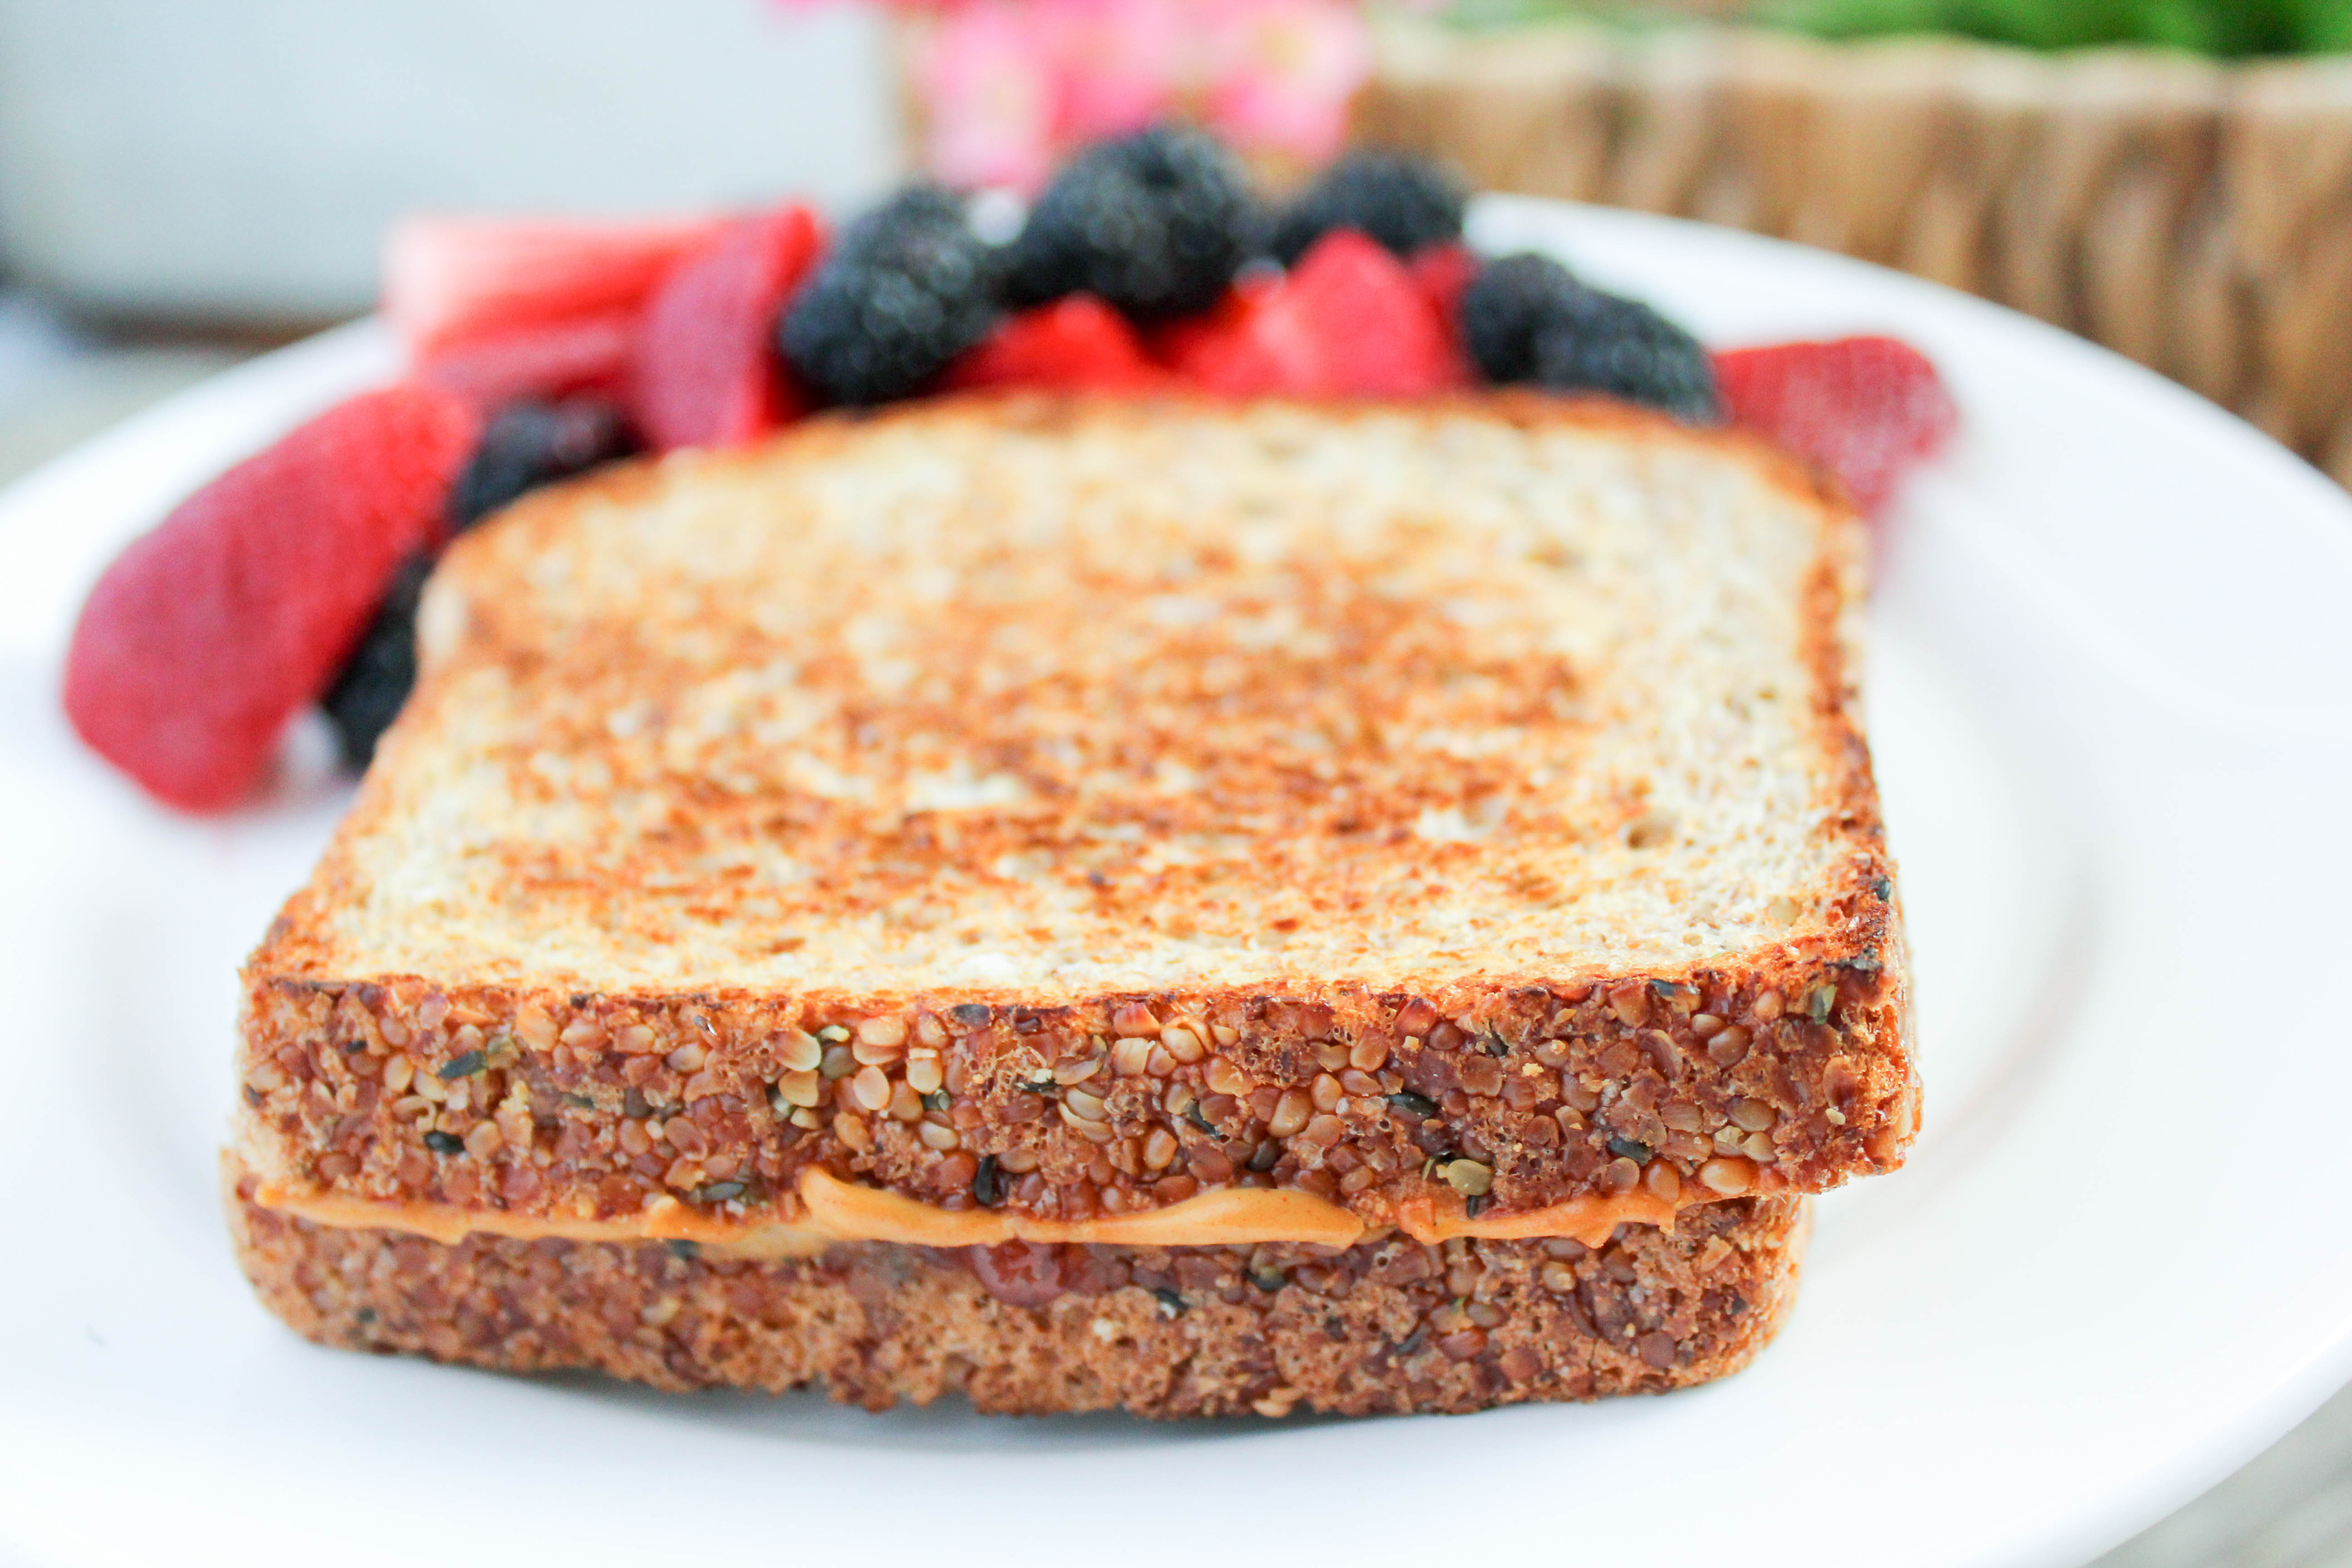 Grilled Peanut Butter and Jelly Sandwich (THM-E, Low Fat)